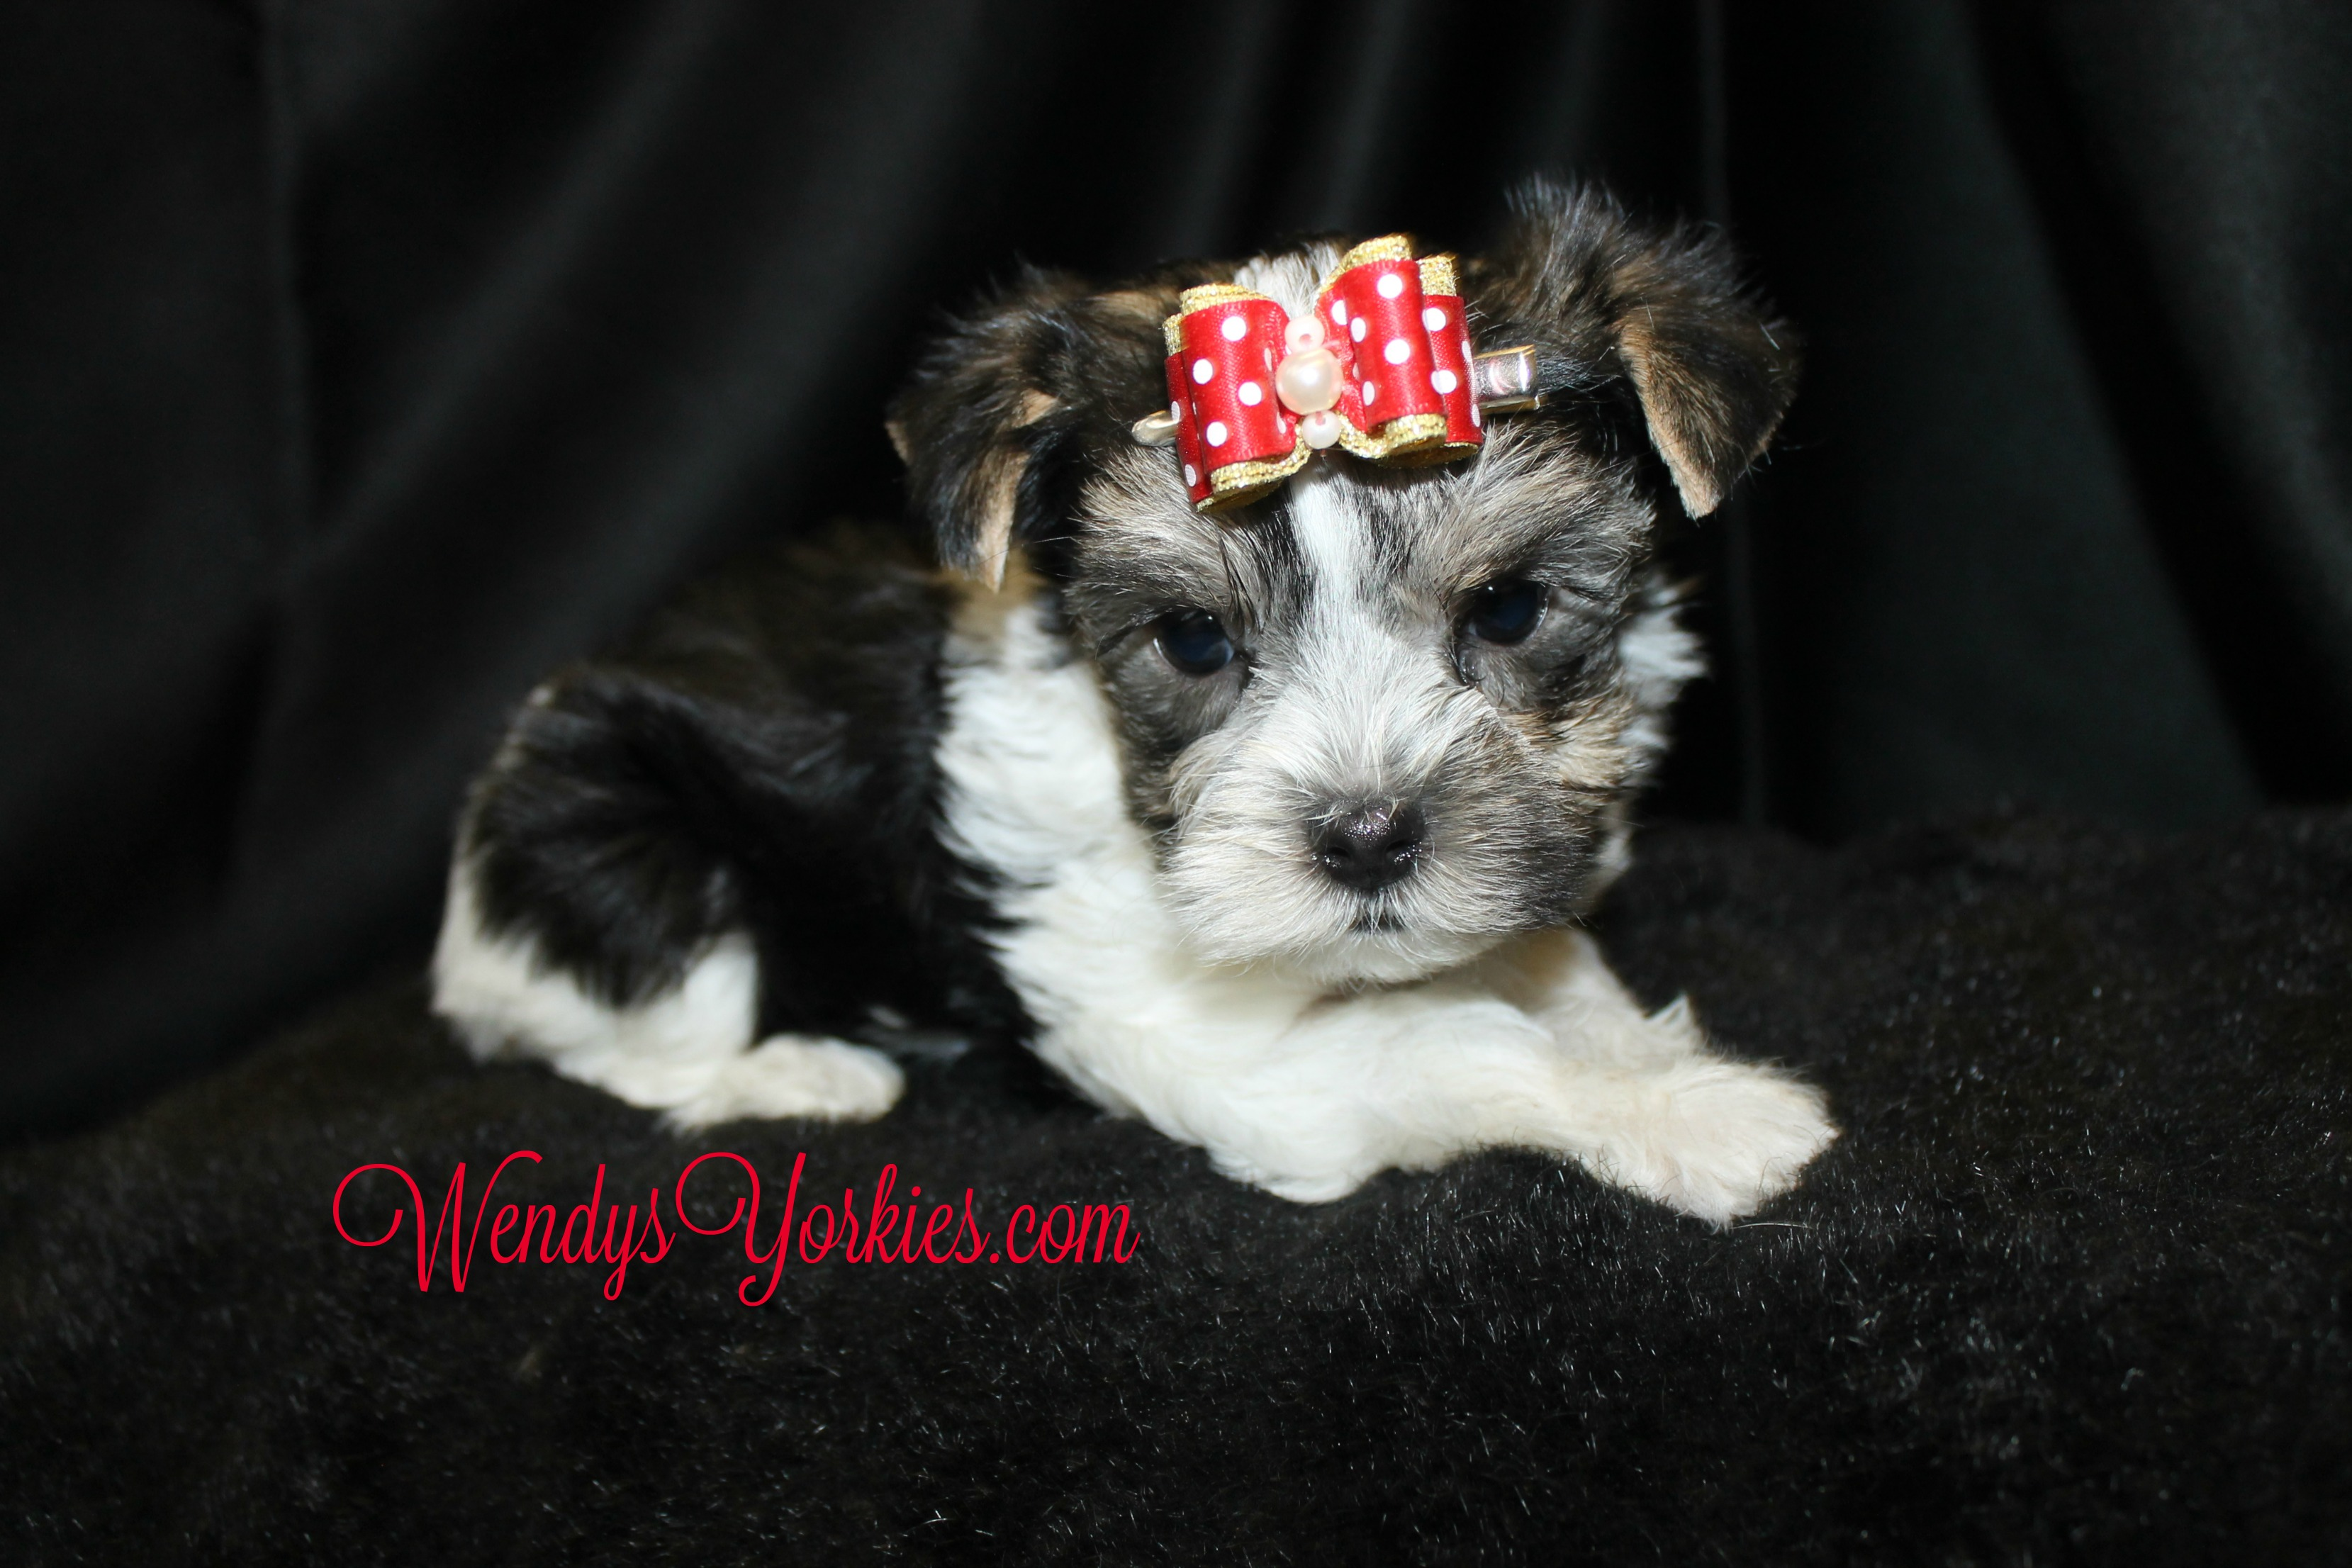 Morkie puppy for sale, WendysYorkies.com, Roxy